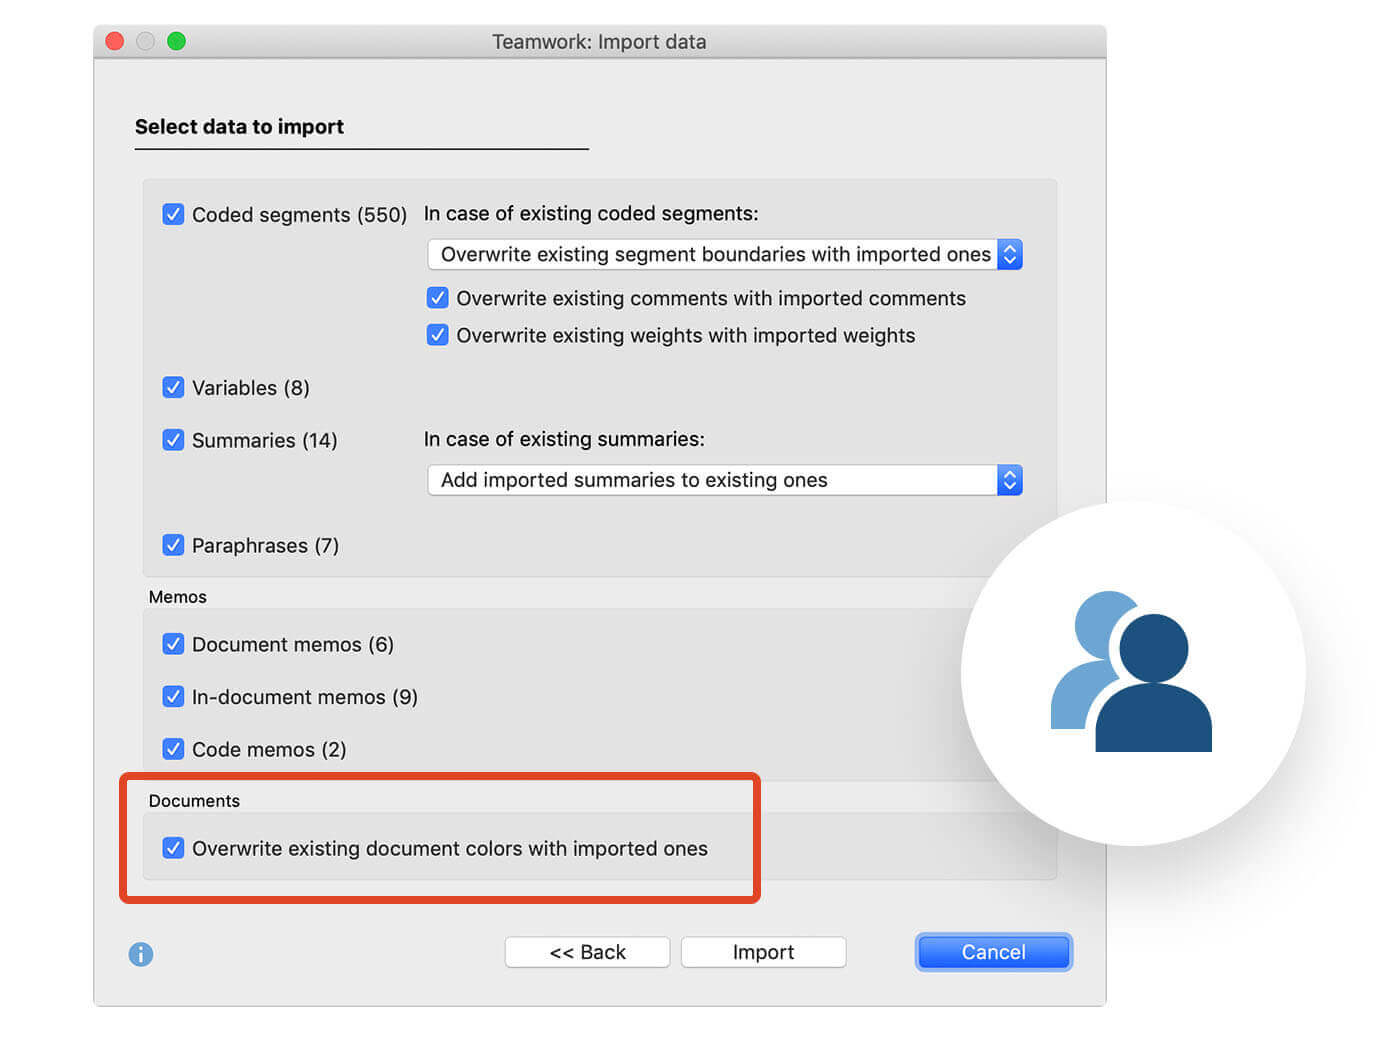 Screenschot from MAXQDA2020 showing the option to overwrite existing document colors from an imported Teamwork Exchange file